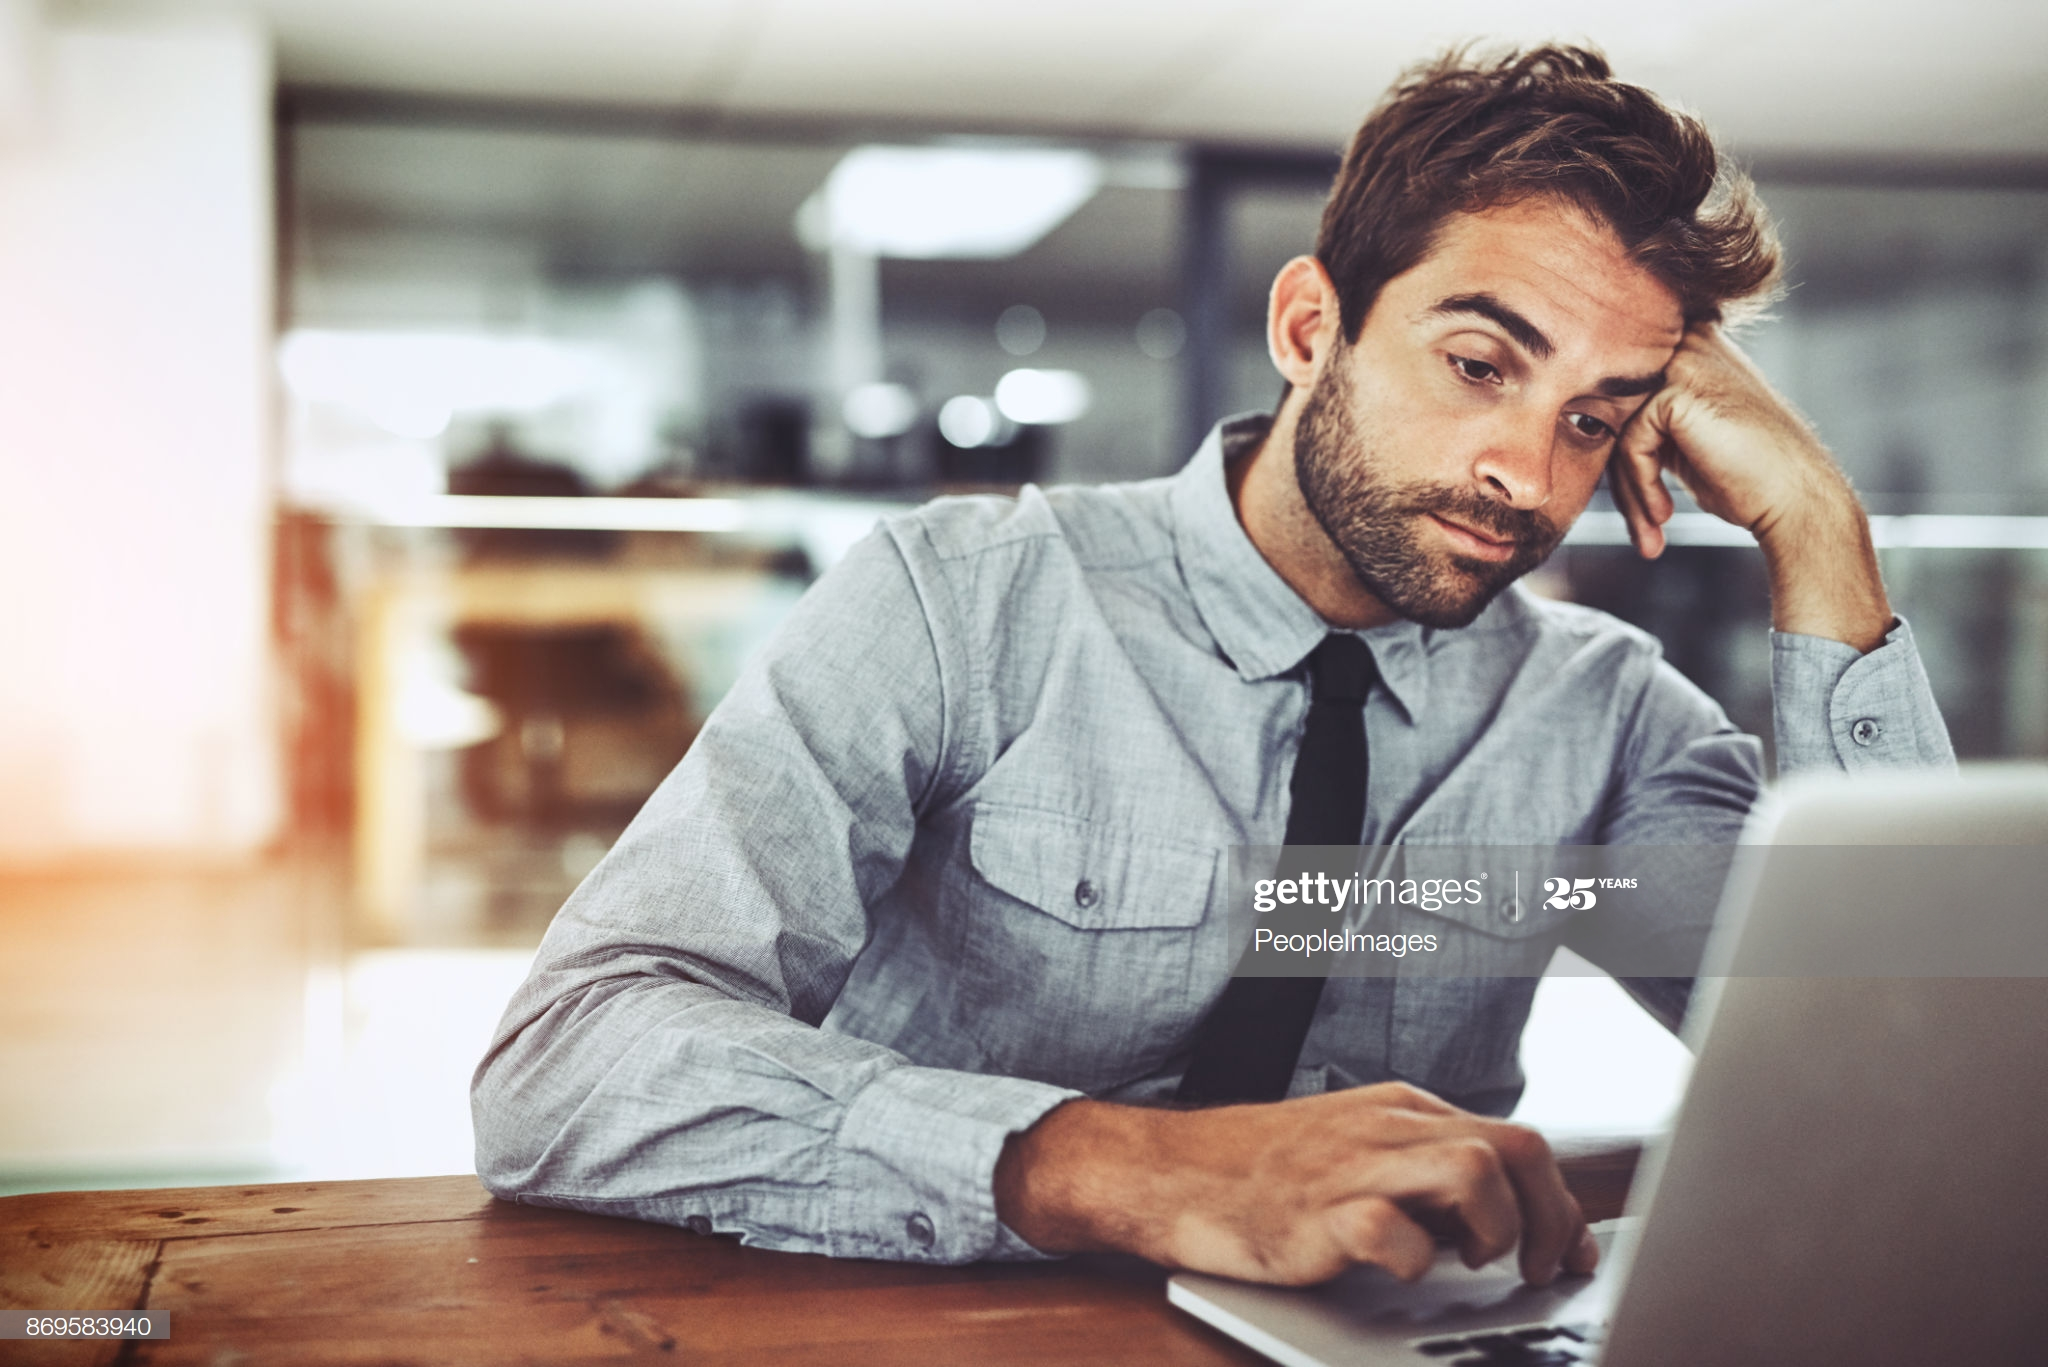 a professional men thinking why WiFi is slower than wired Ethernet connection